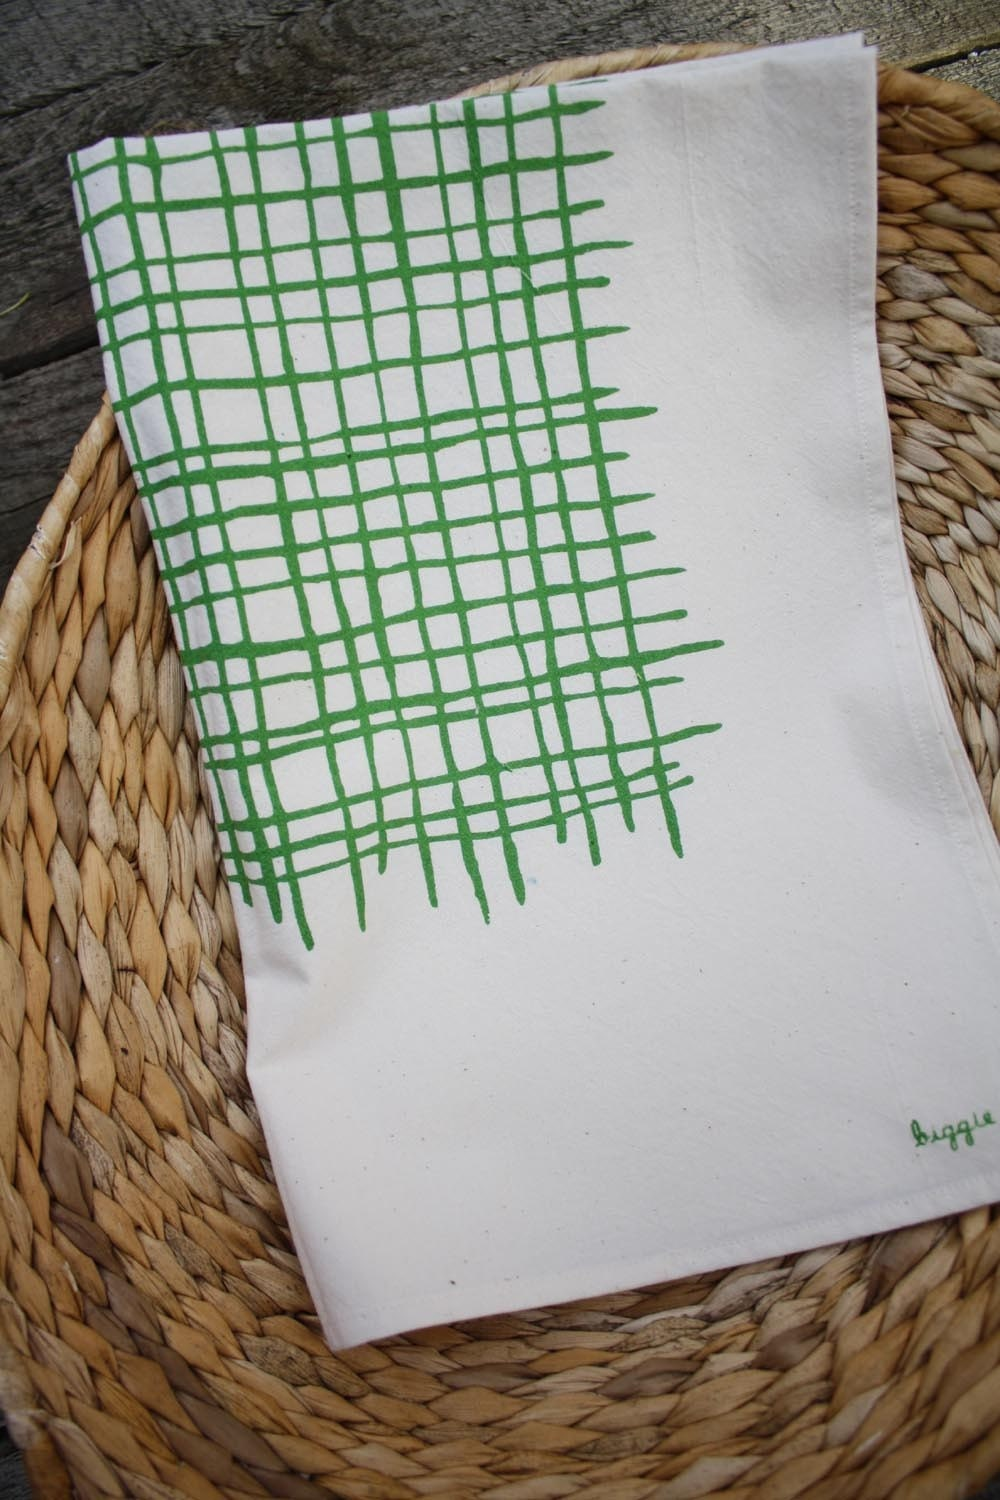 Printed Tea Towel - Green Weave on White